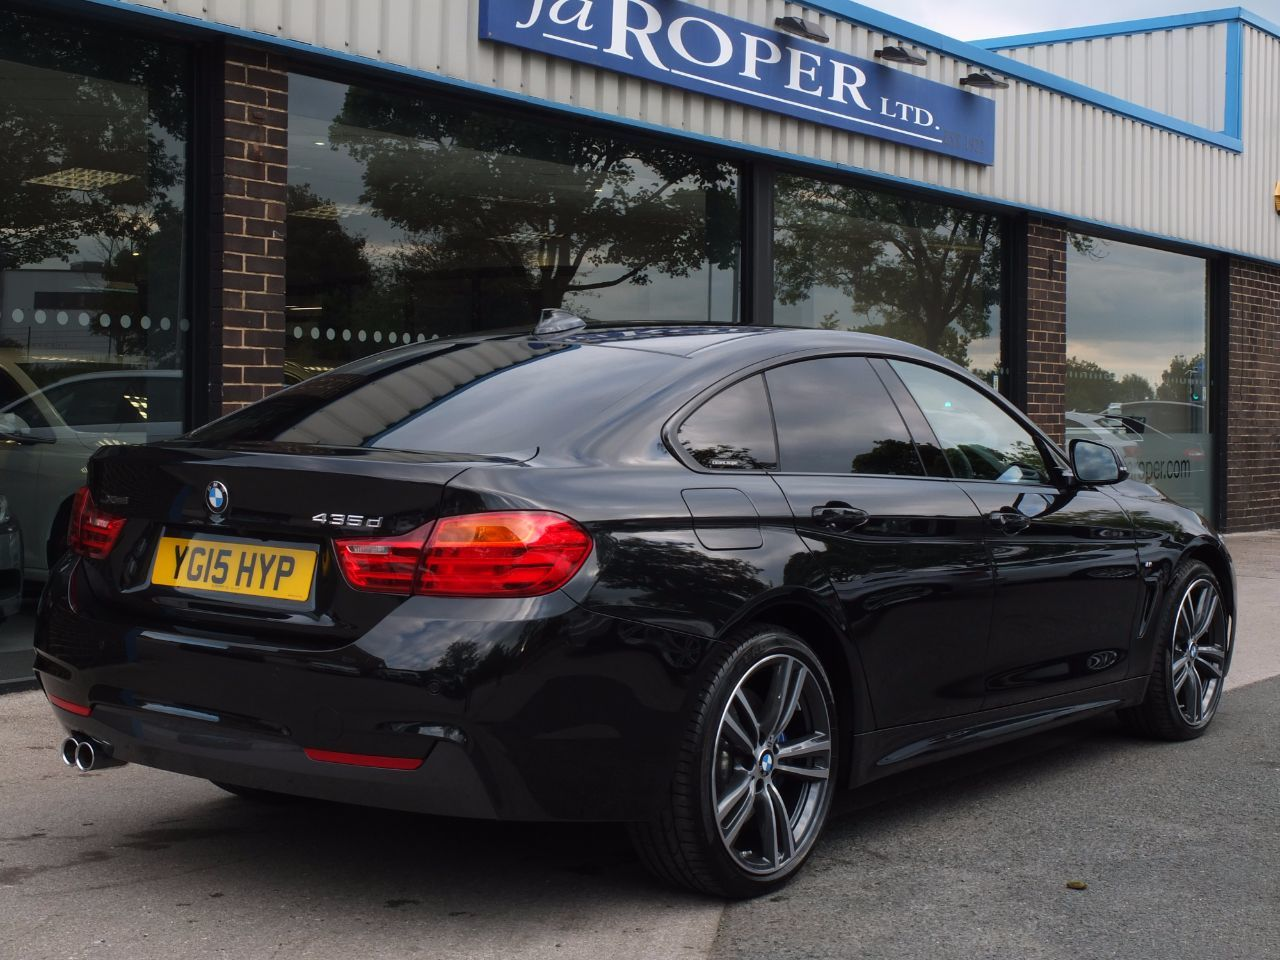 used bmw 4 series 435d xdrive m sport gran coupe auto for sale in bradford west yorkshire. Black Bedroom Furniture Sets. Home Design Ideas